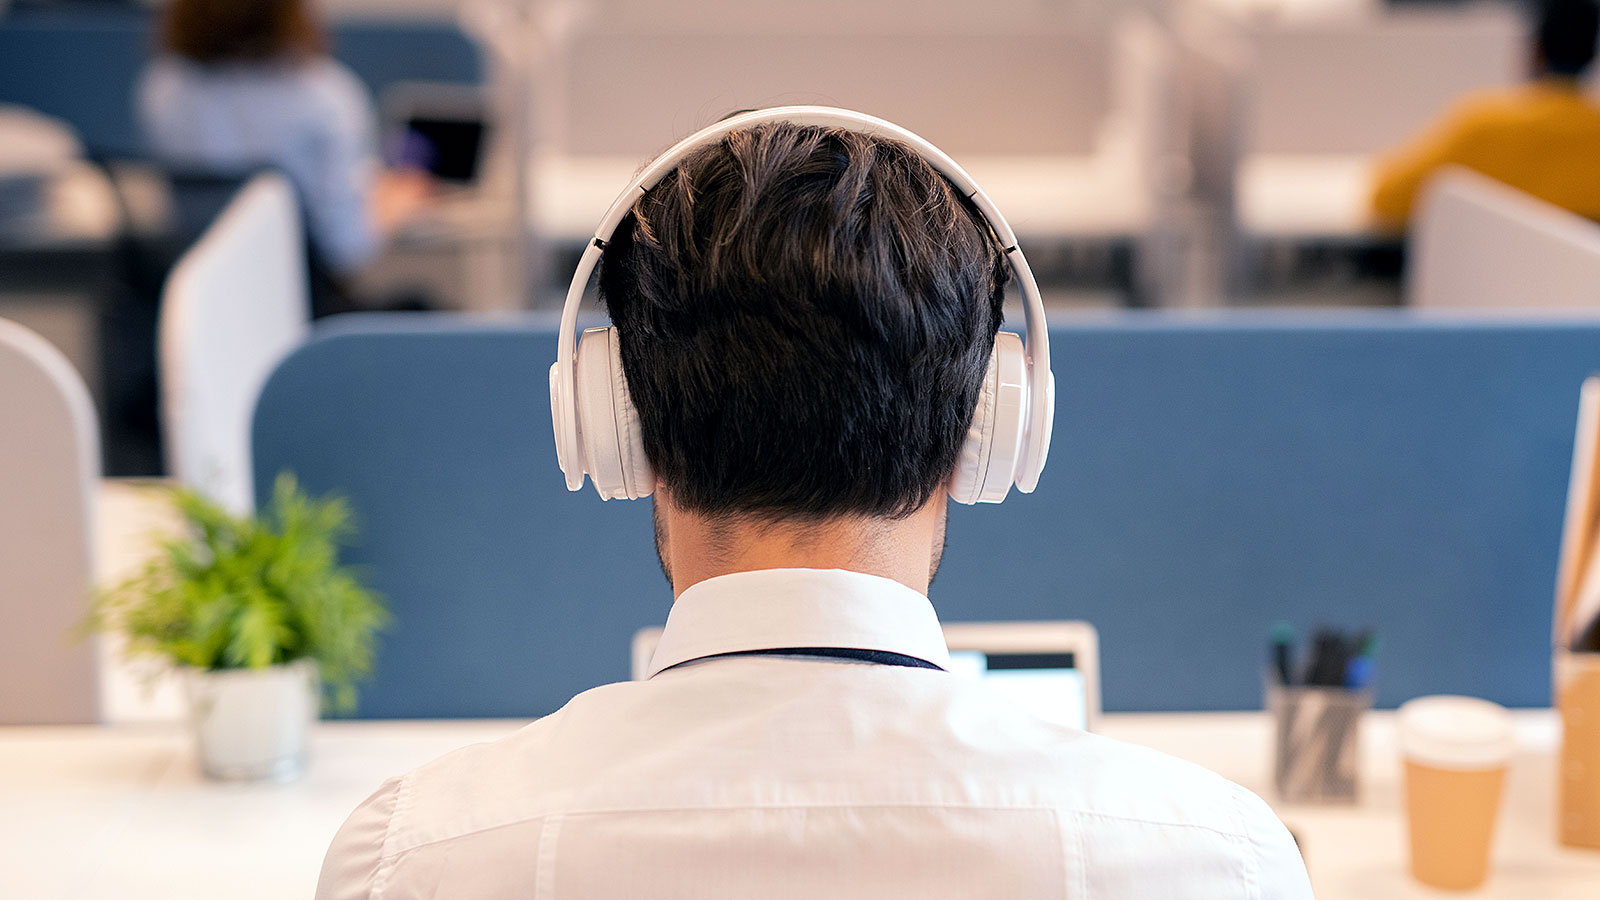 This is what people really think when you wear headphones at work